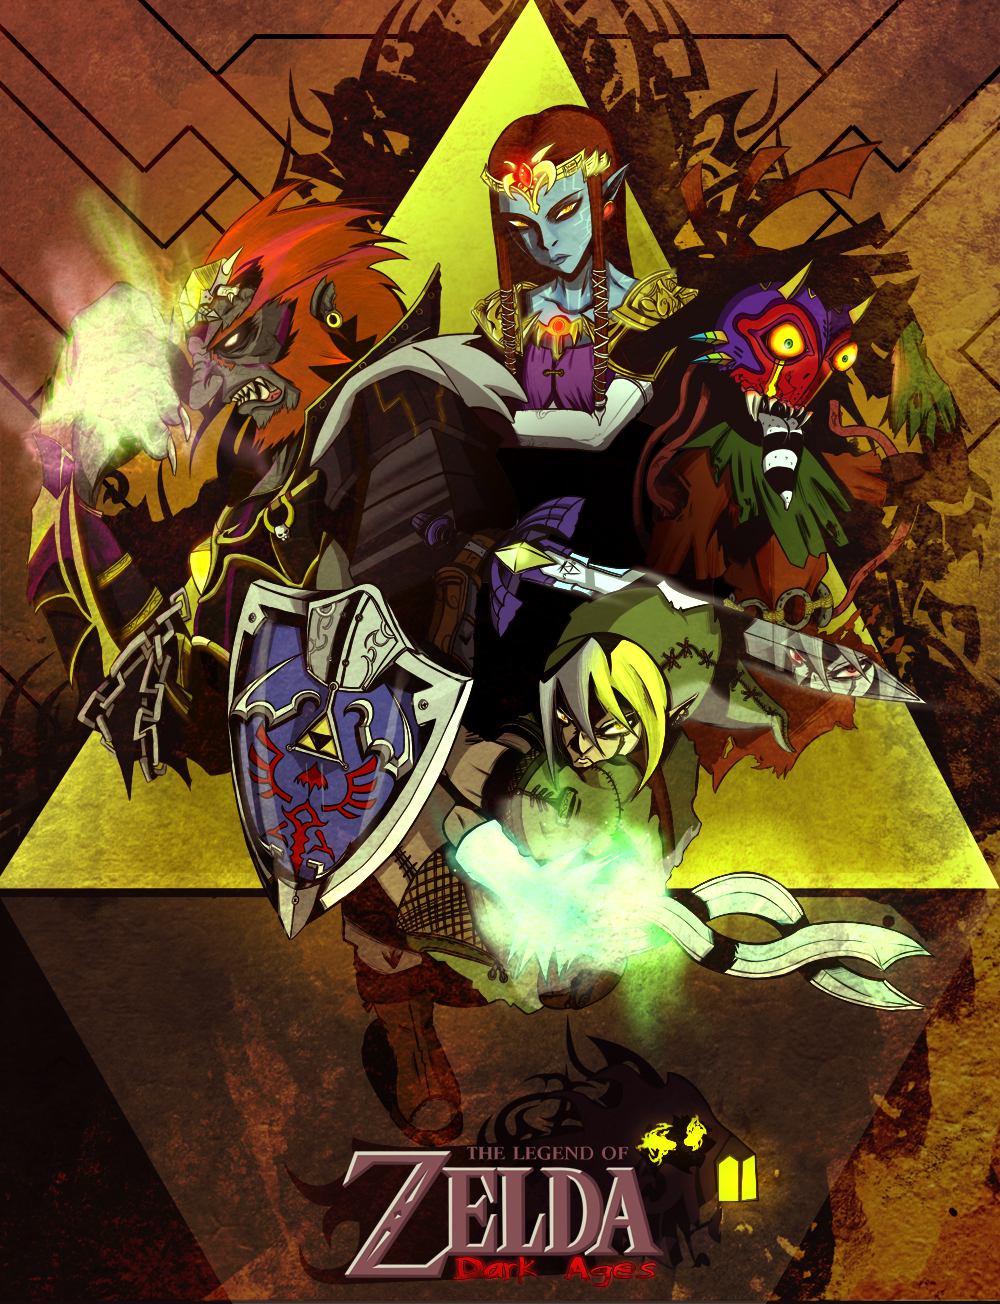 Legend of Zelda: Dark Ages